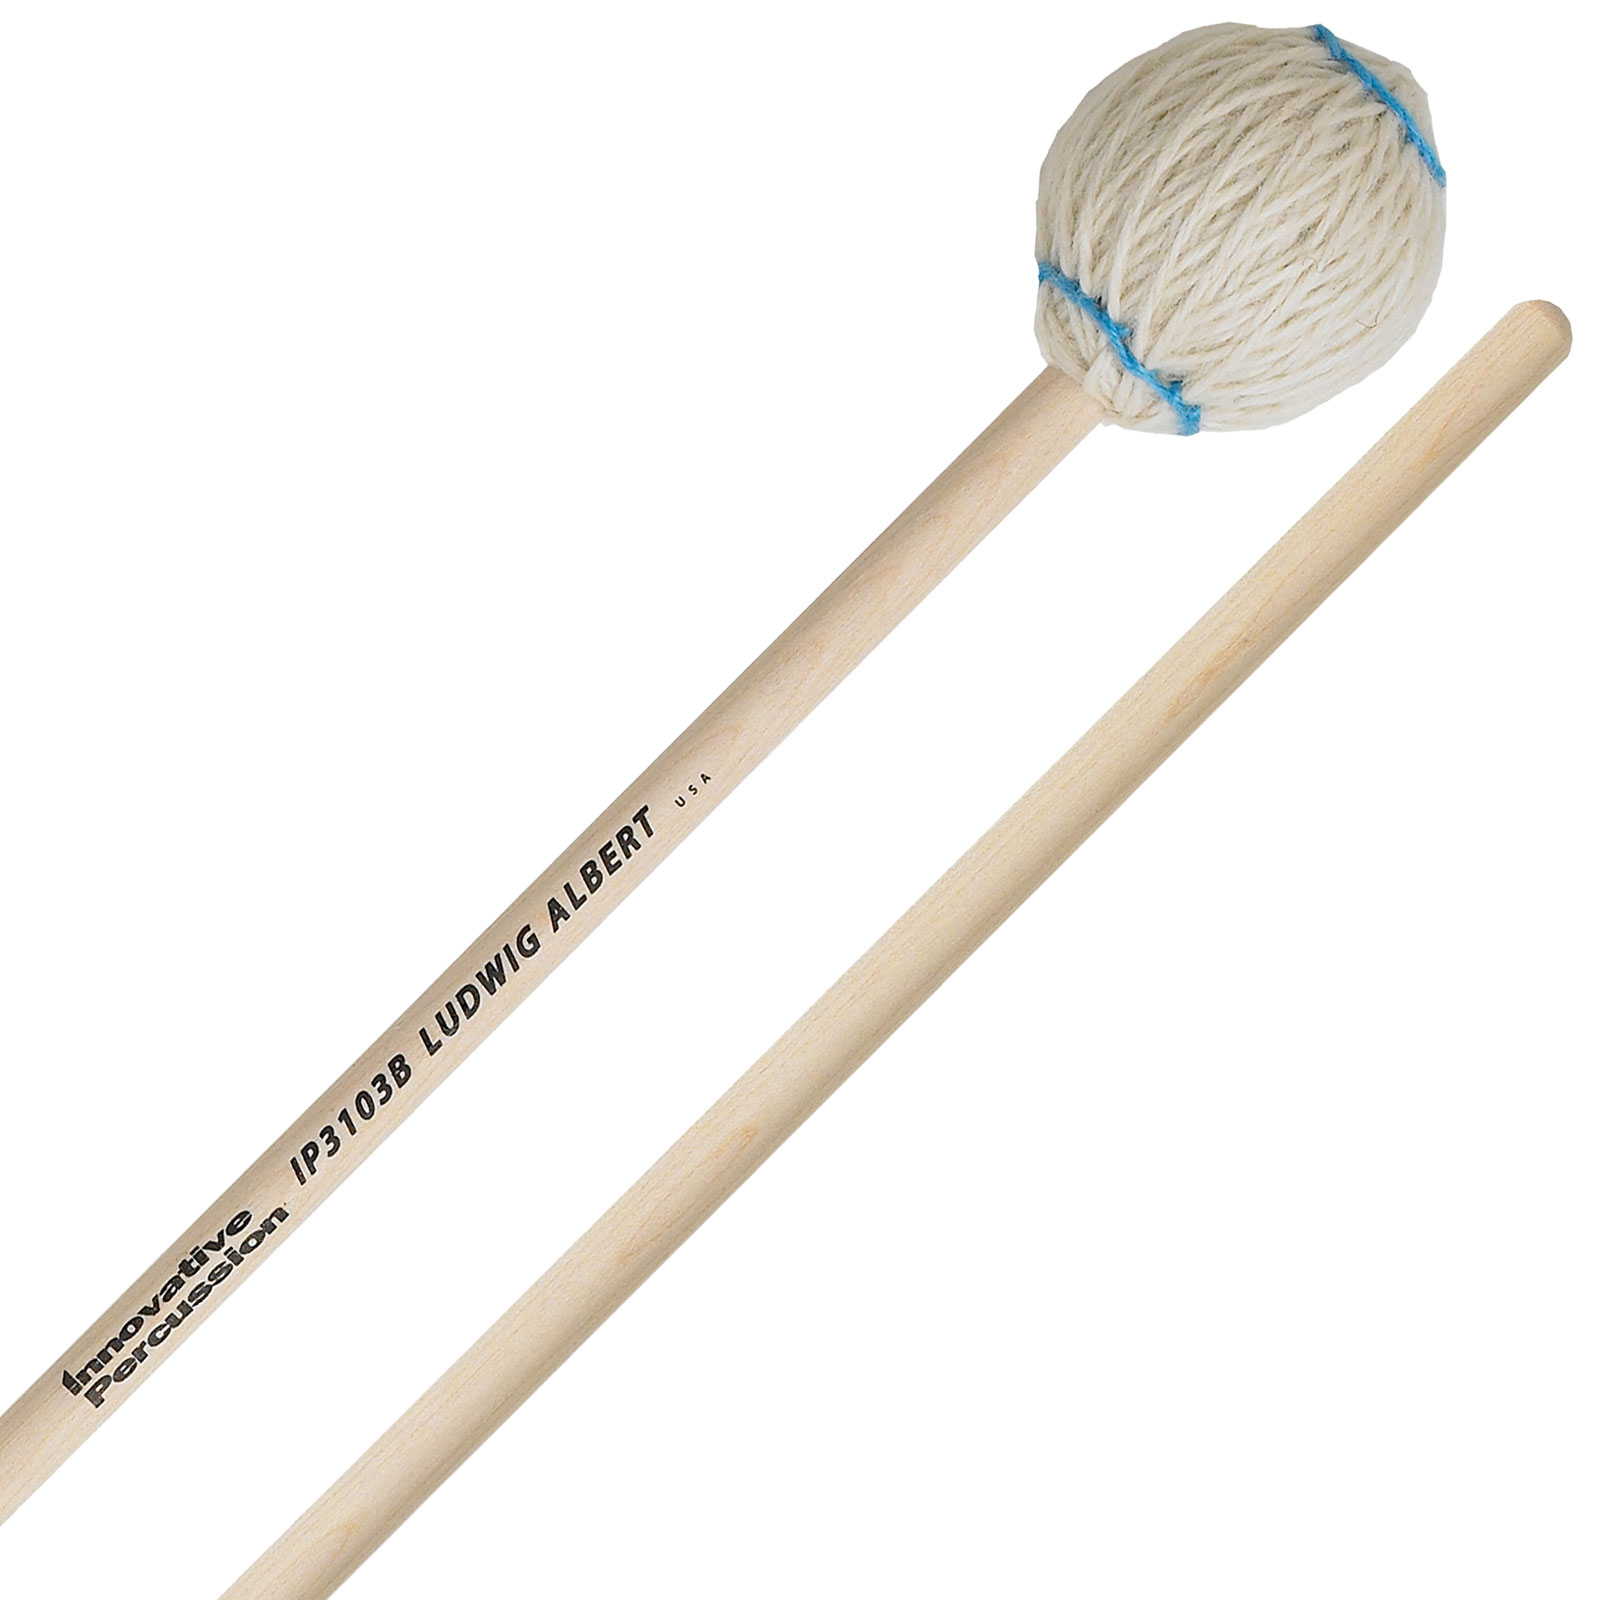 Innovative Percussion Ludwig Albert Signature Soft Marimba Mallets with Birch Shafts